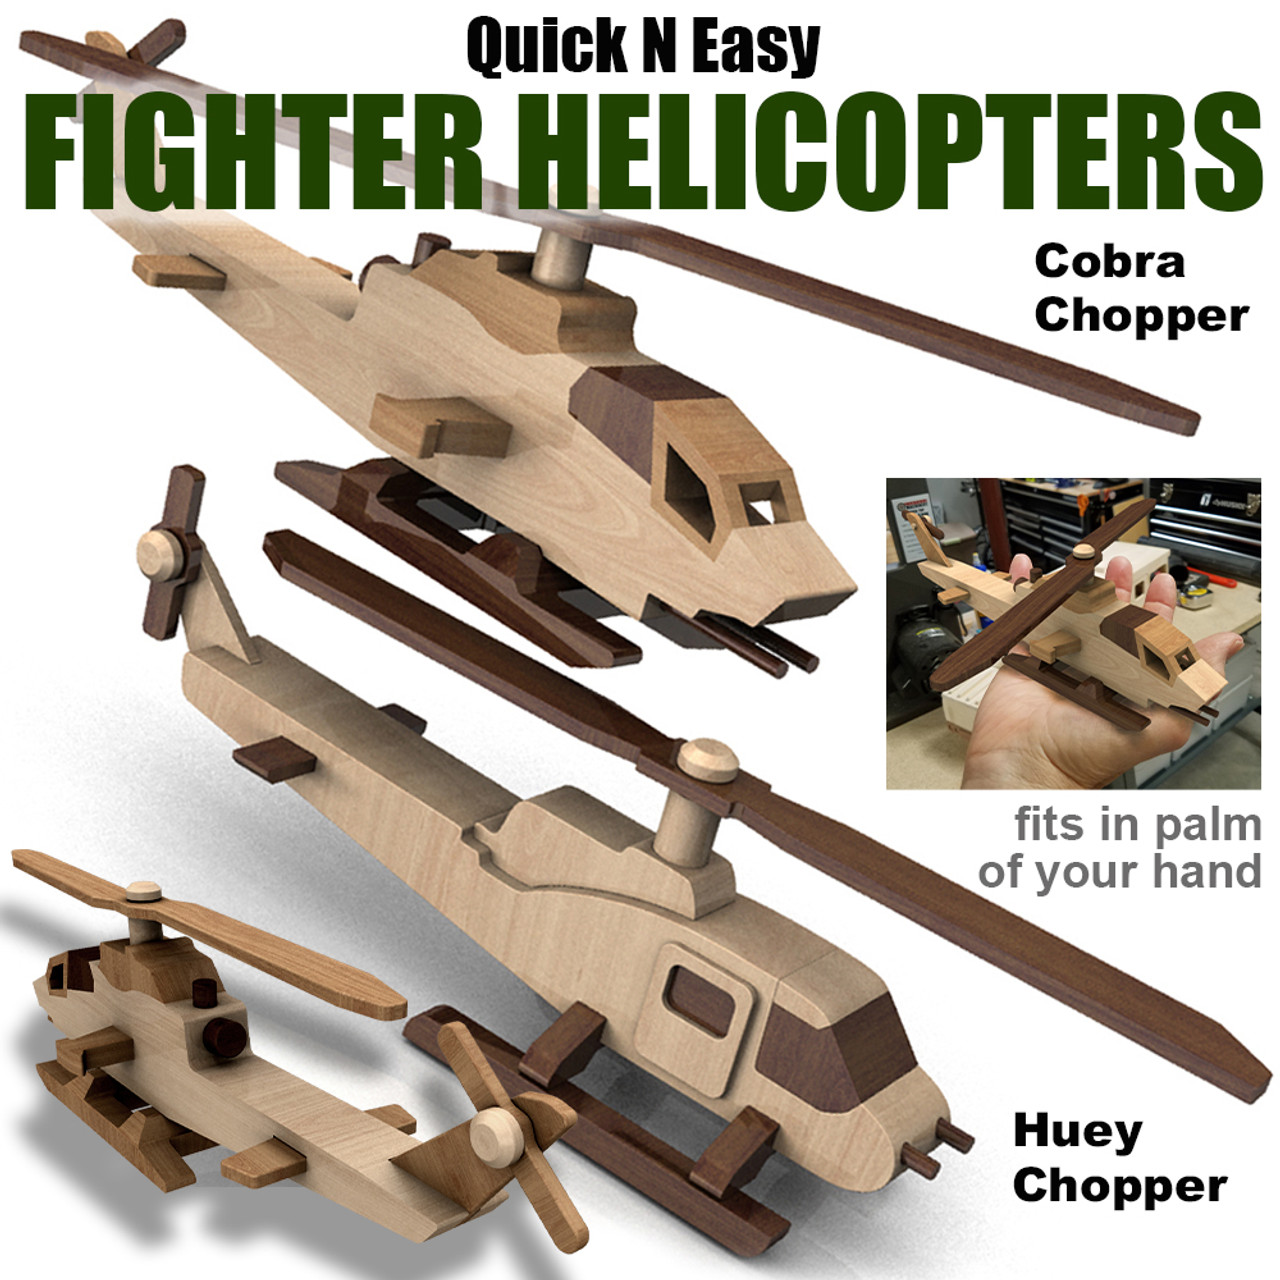 quick & easy fighter helicopters wood toy plans (2 pdf downloads)